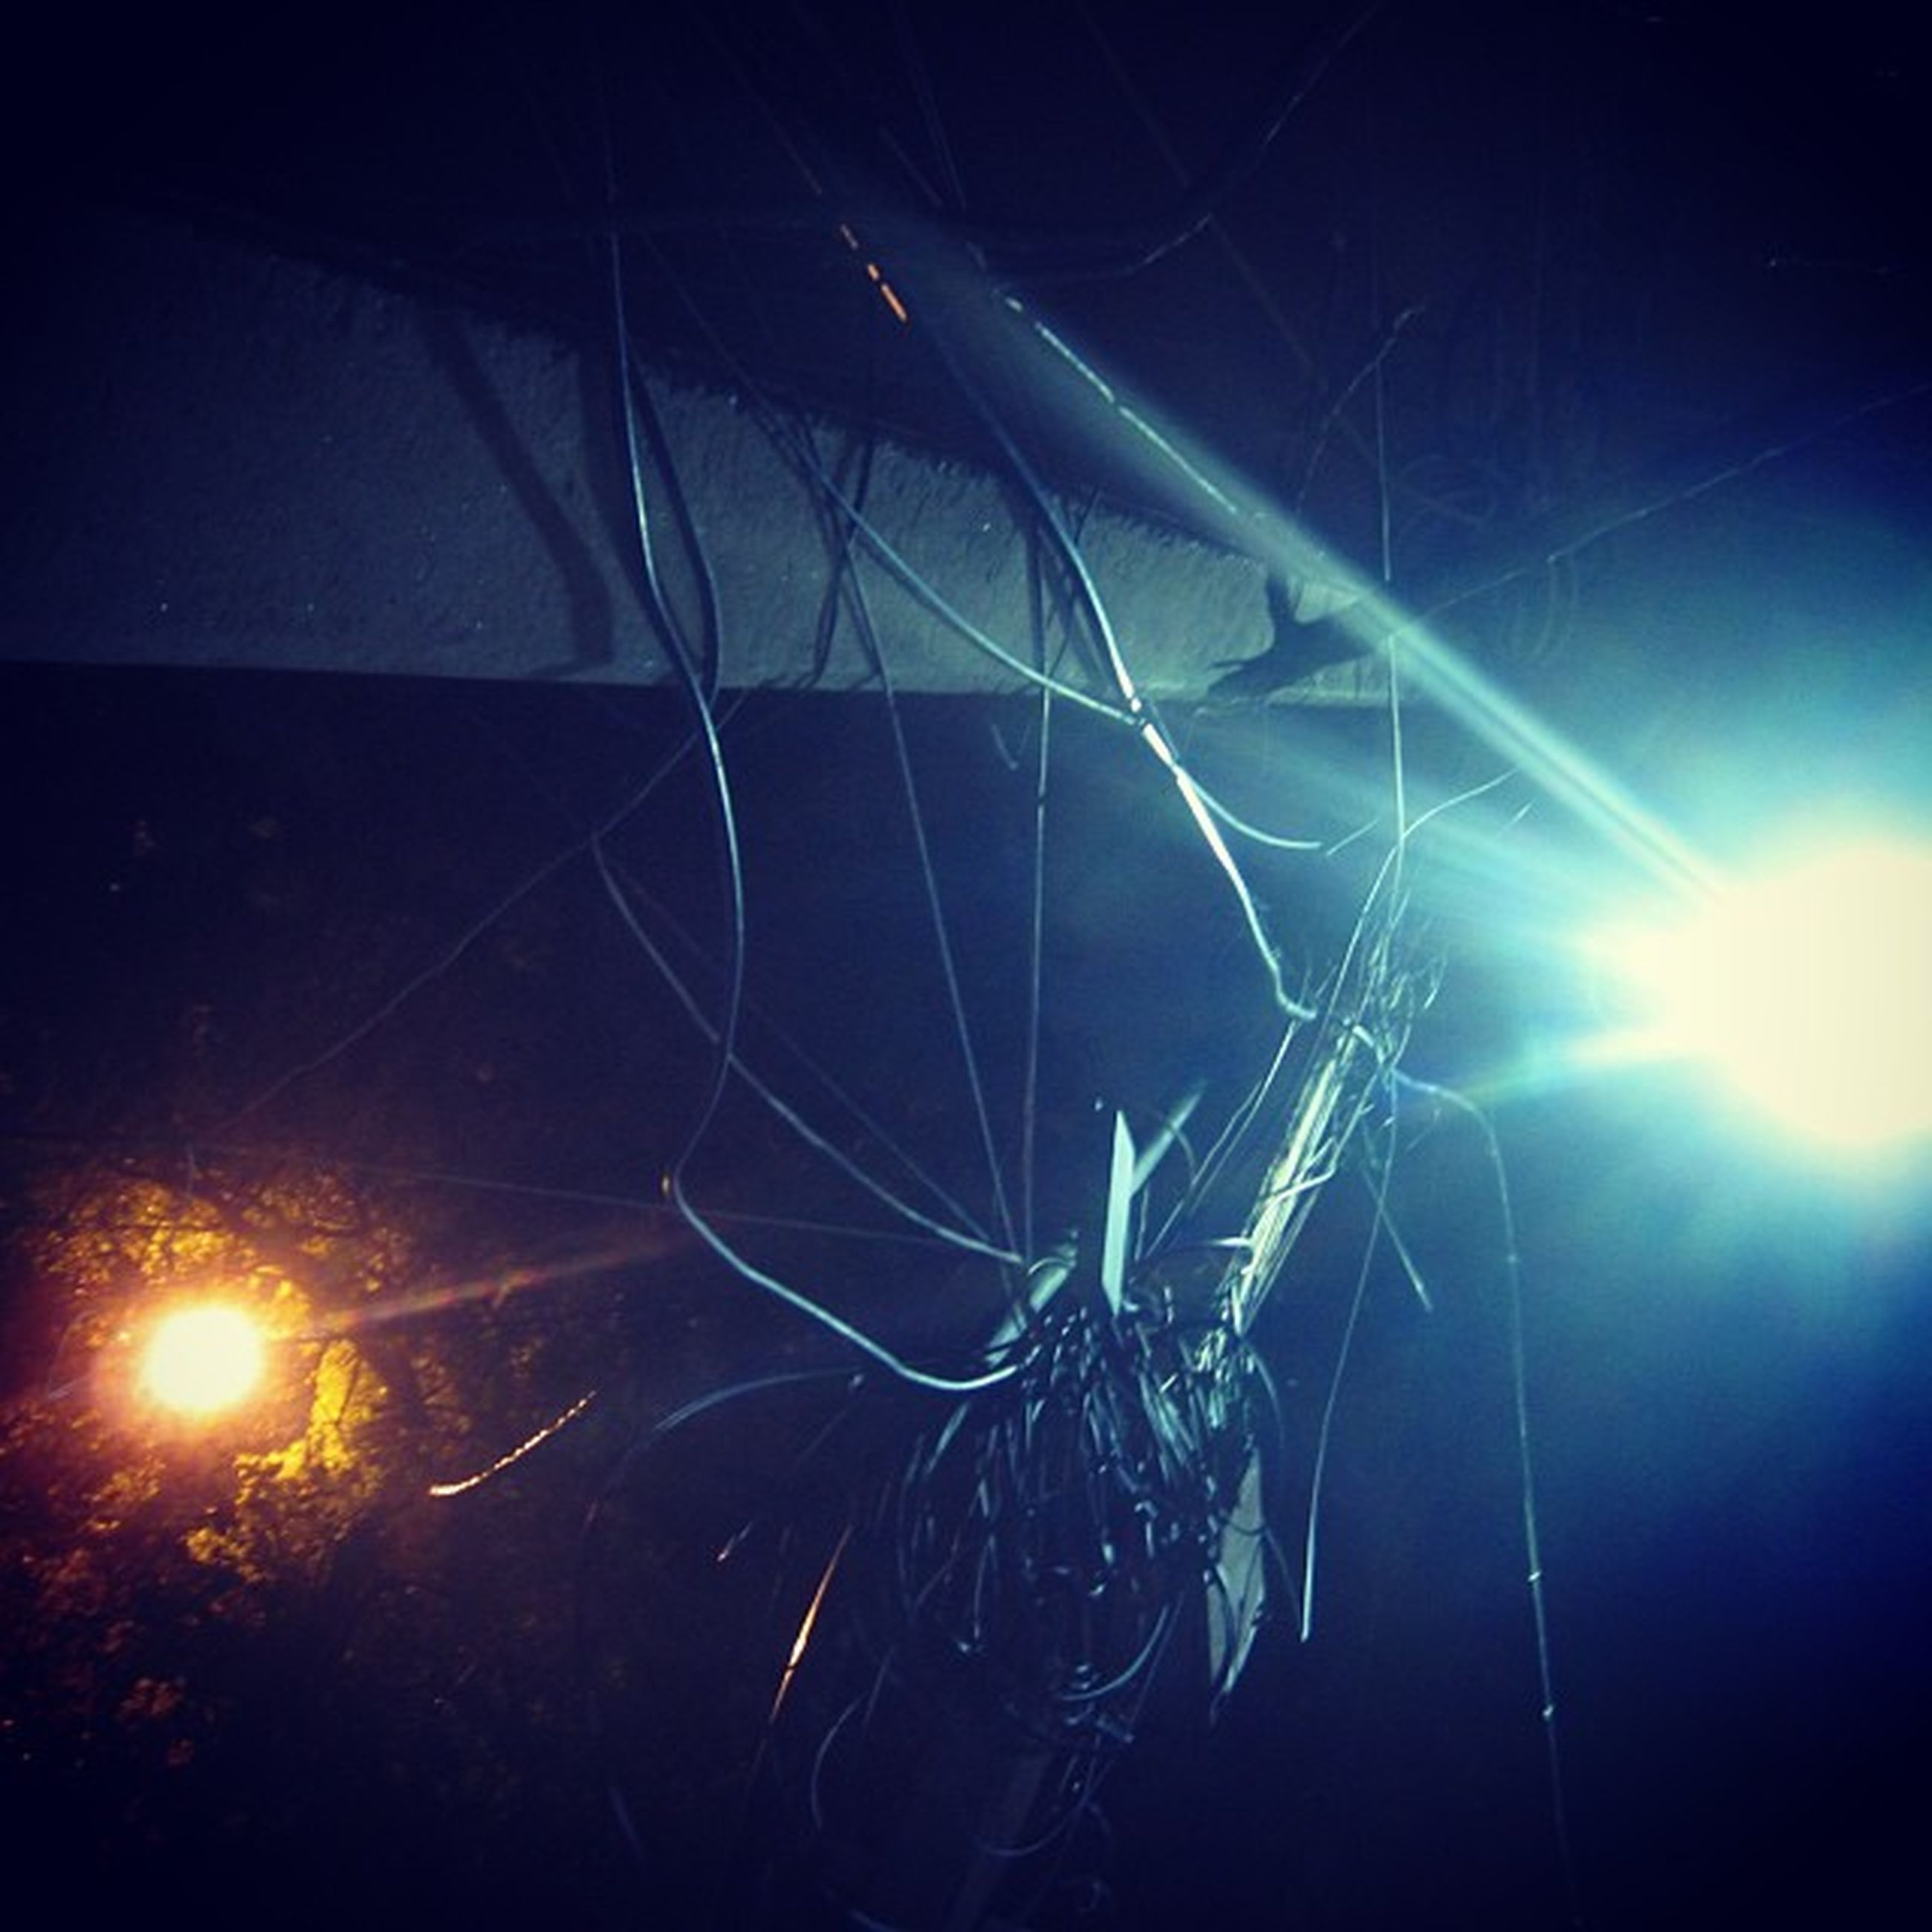 spider web, night, low angle view, illuminated, electricity, glowing, close-up, complexity, spider, indoors, no people, lighting equipment, lens flare, light - natural phenomenon, silhouette, sky, light, pattern, nature